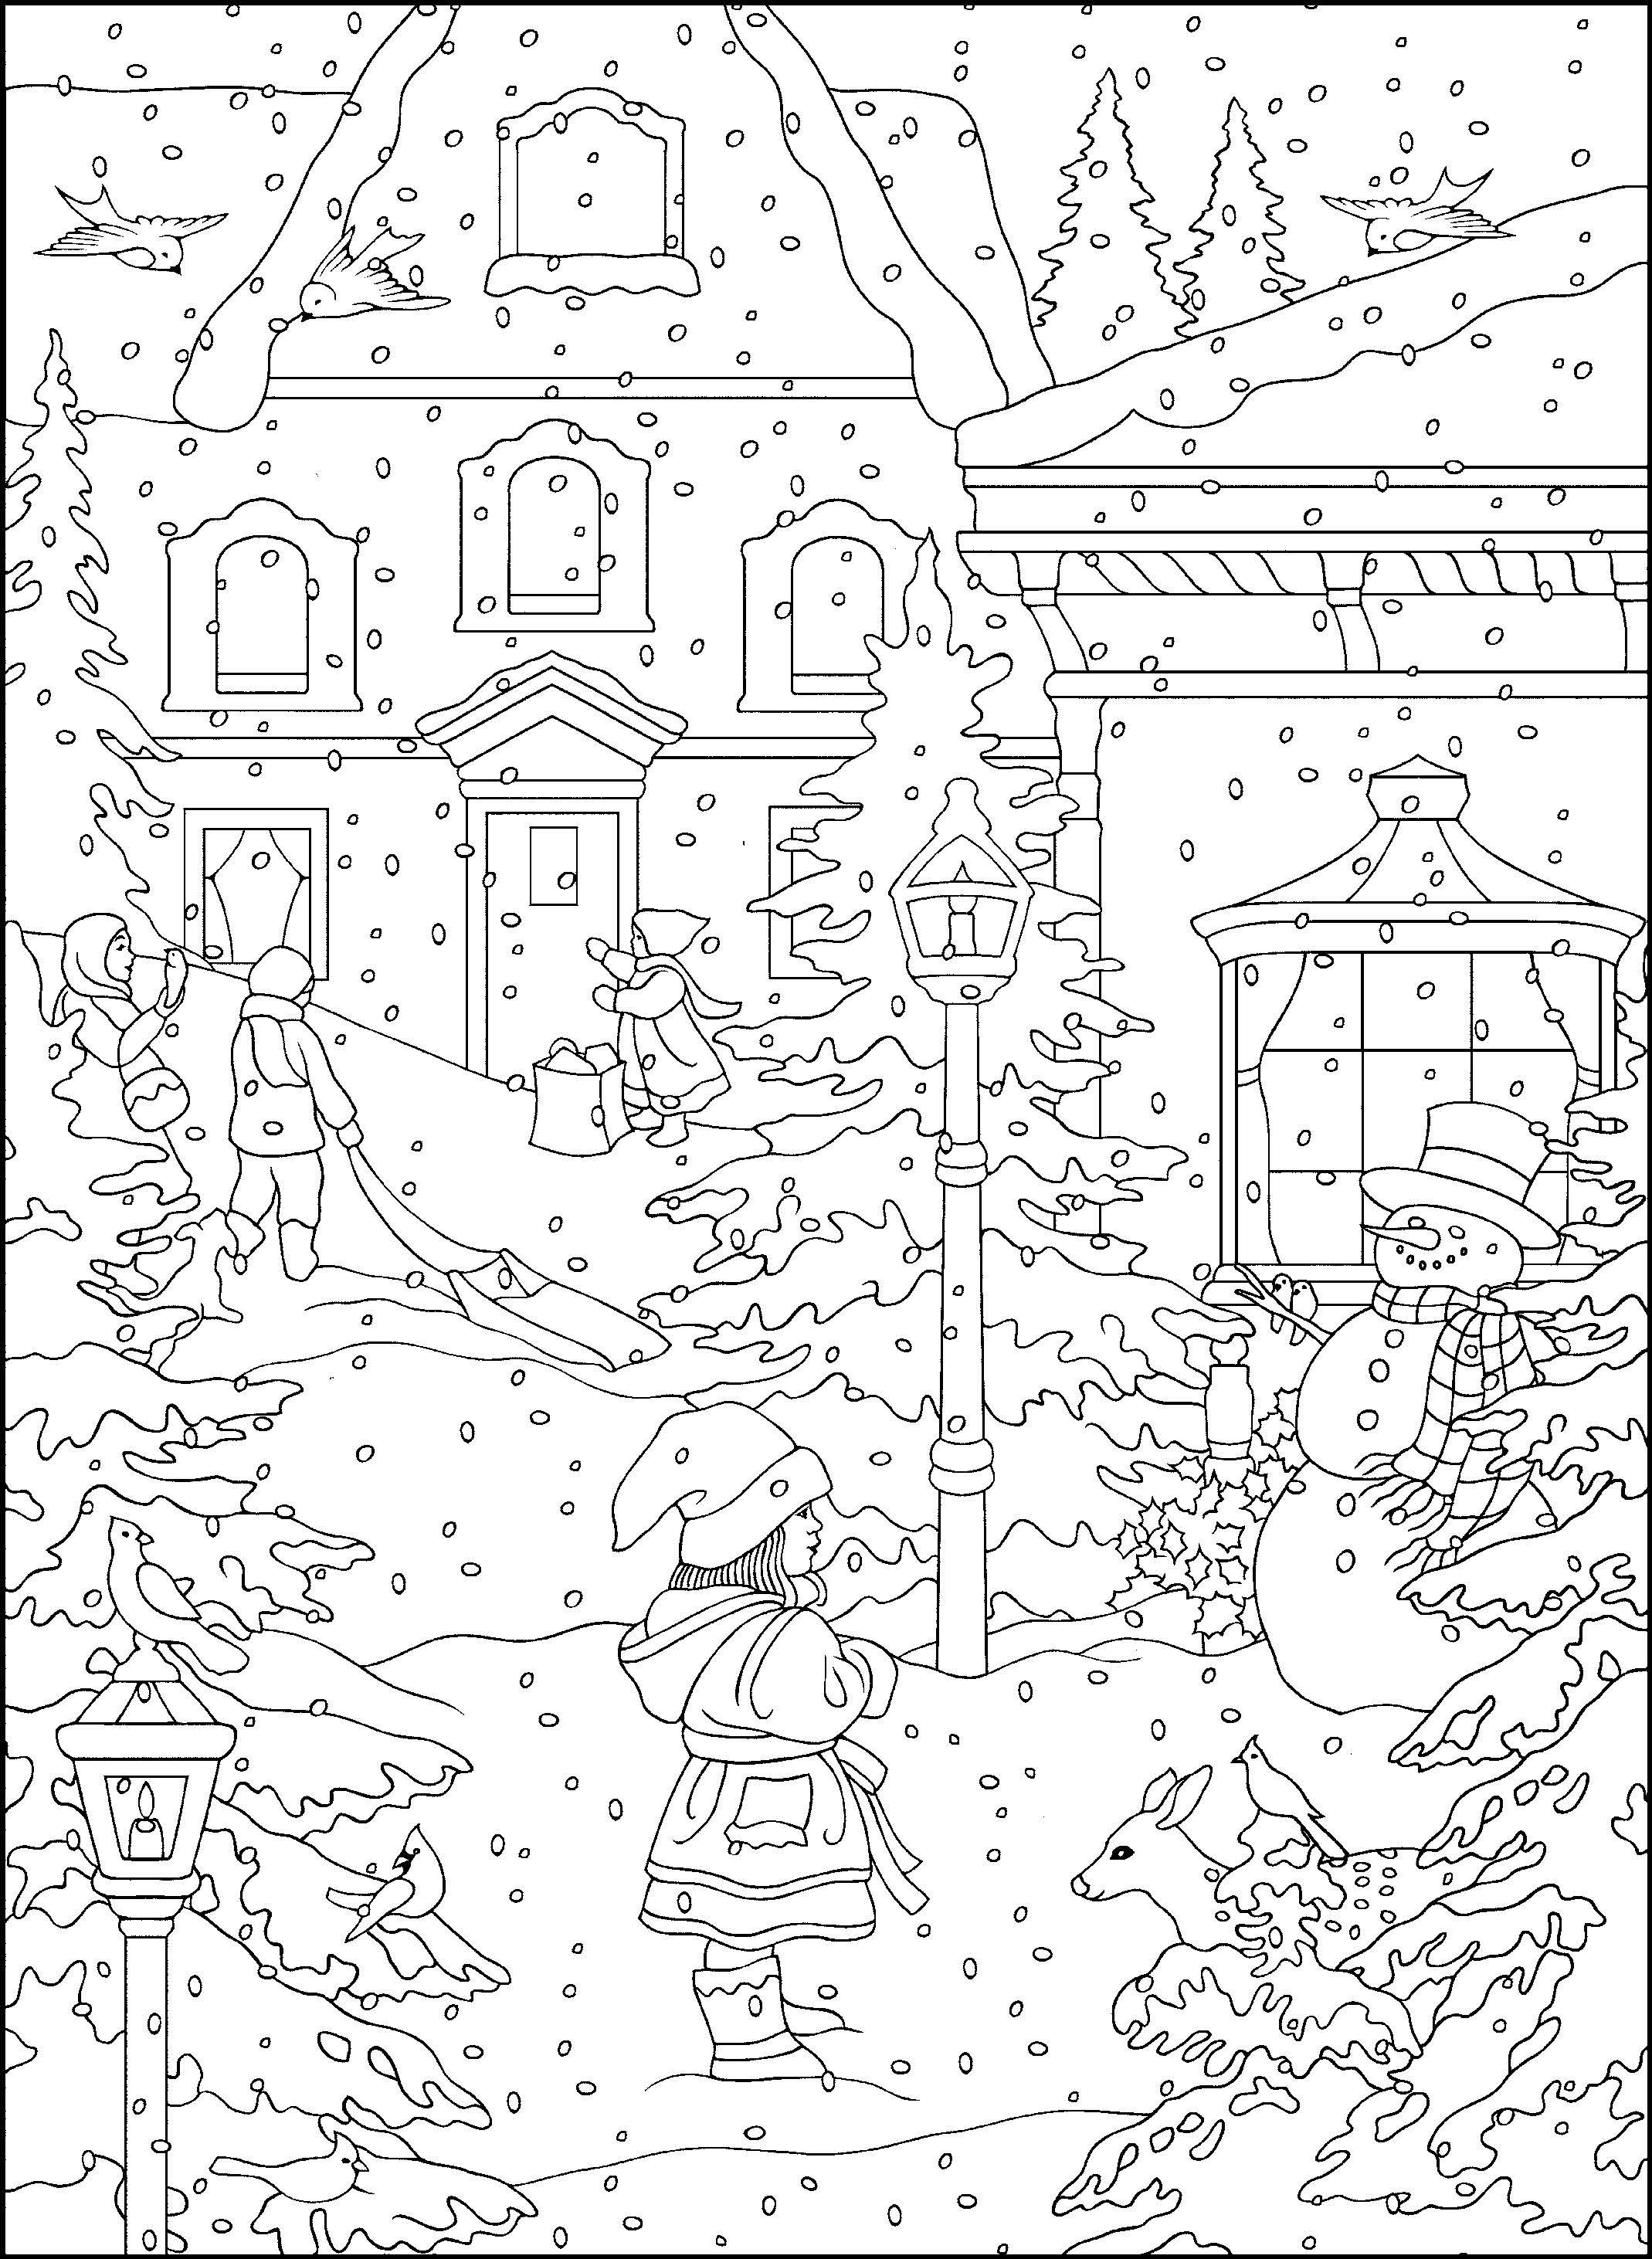 Winter Coloring Pages For Adults Best Coloring Pages For Kids Kleurplaten Kleurplaten Voor Volwassenen Free